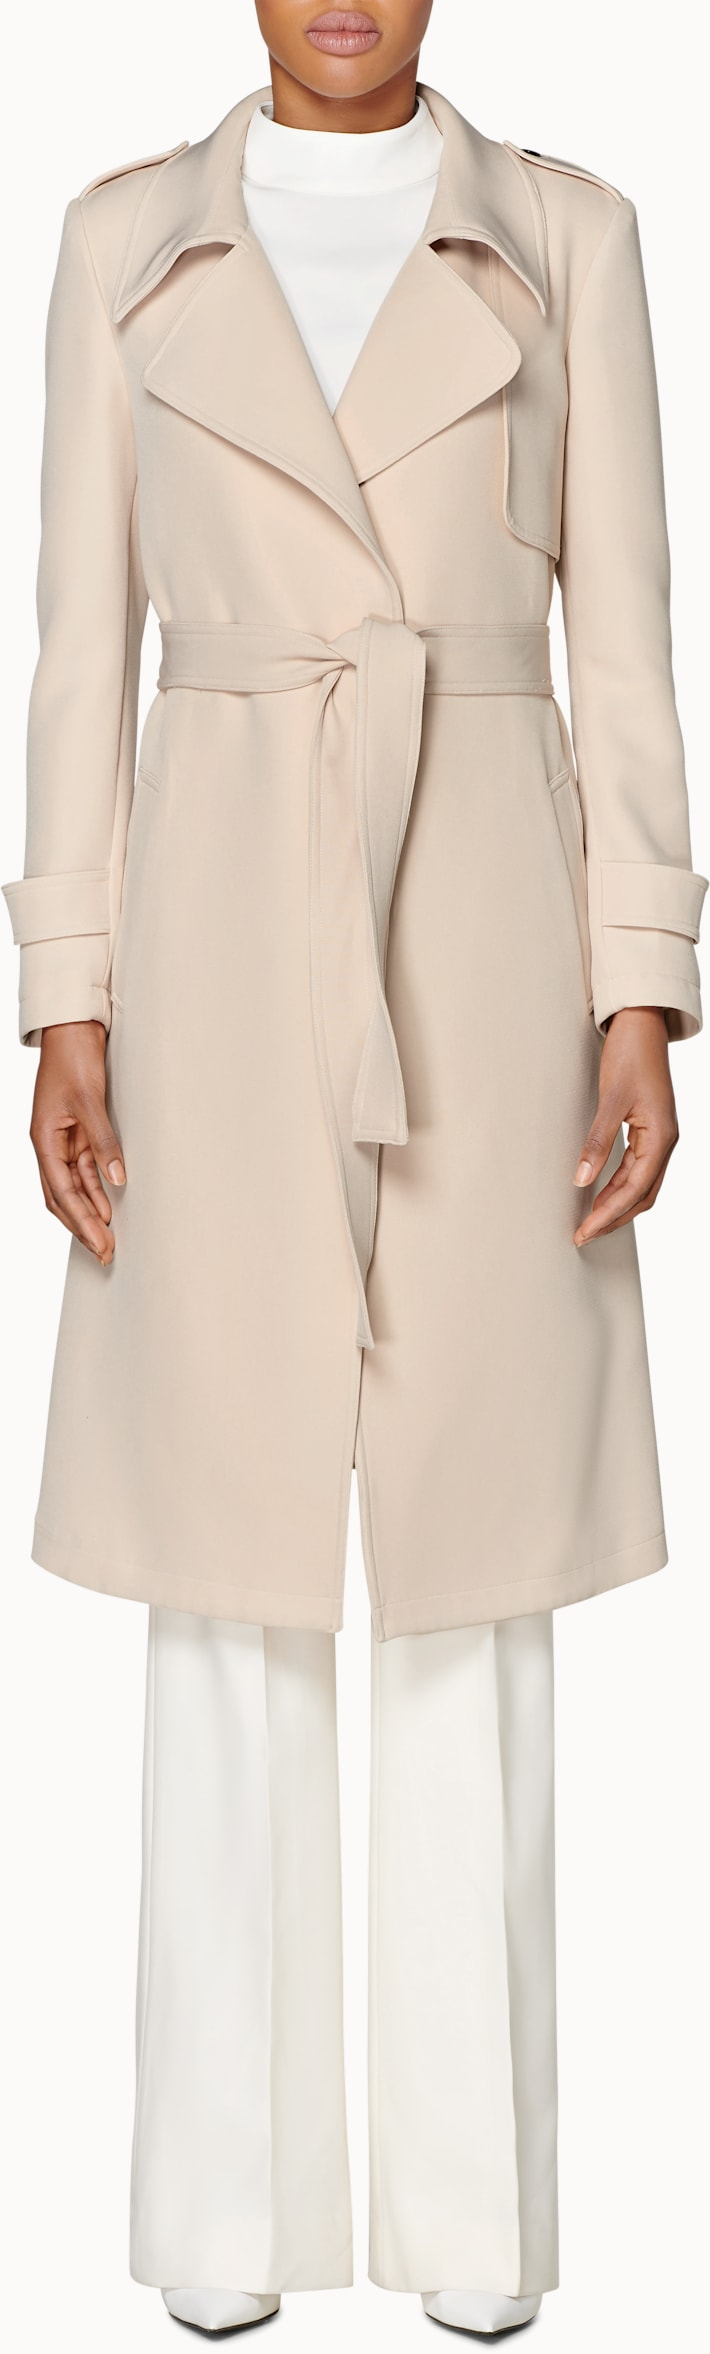 Quin Light Brown  Trench Coat